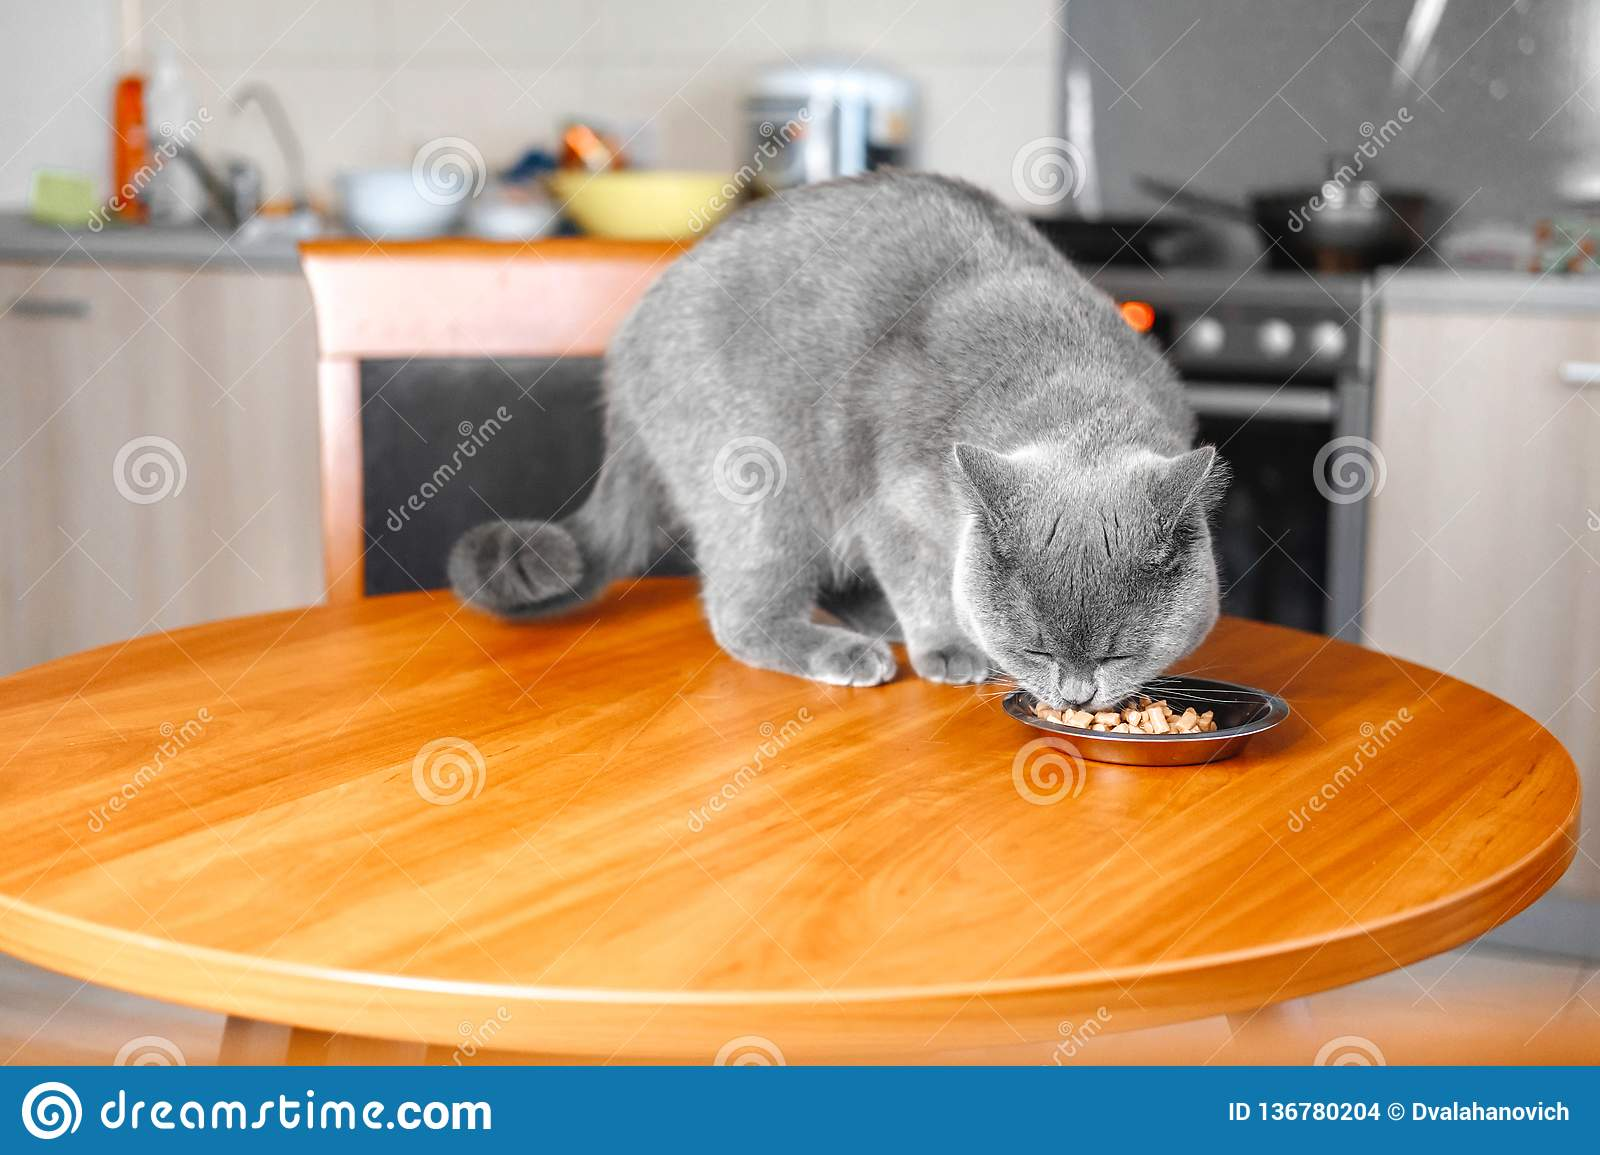 Cat eats food from a bowl at the table